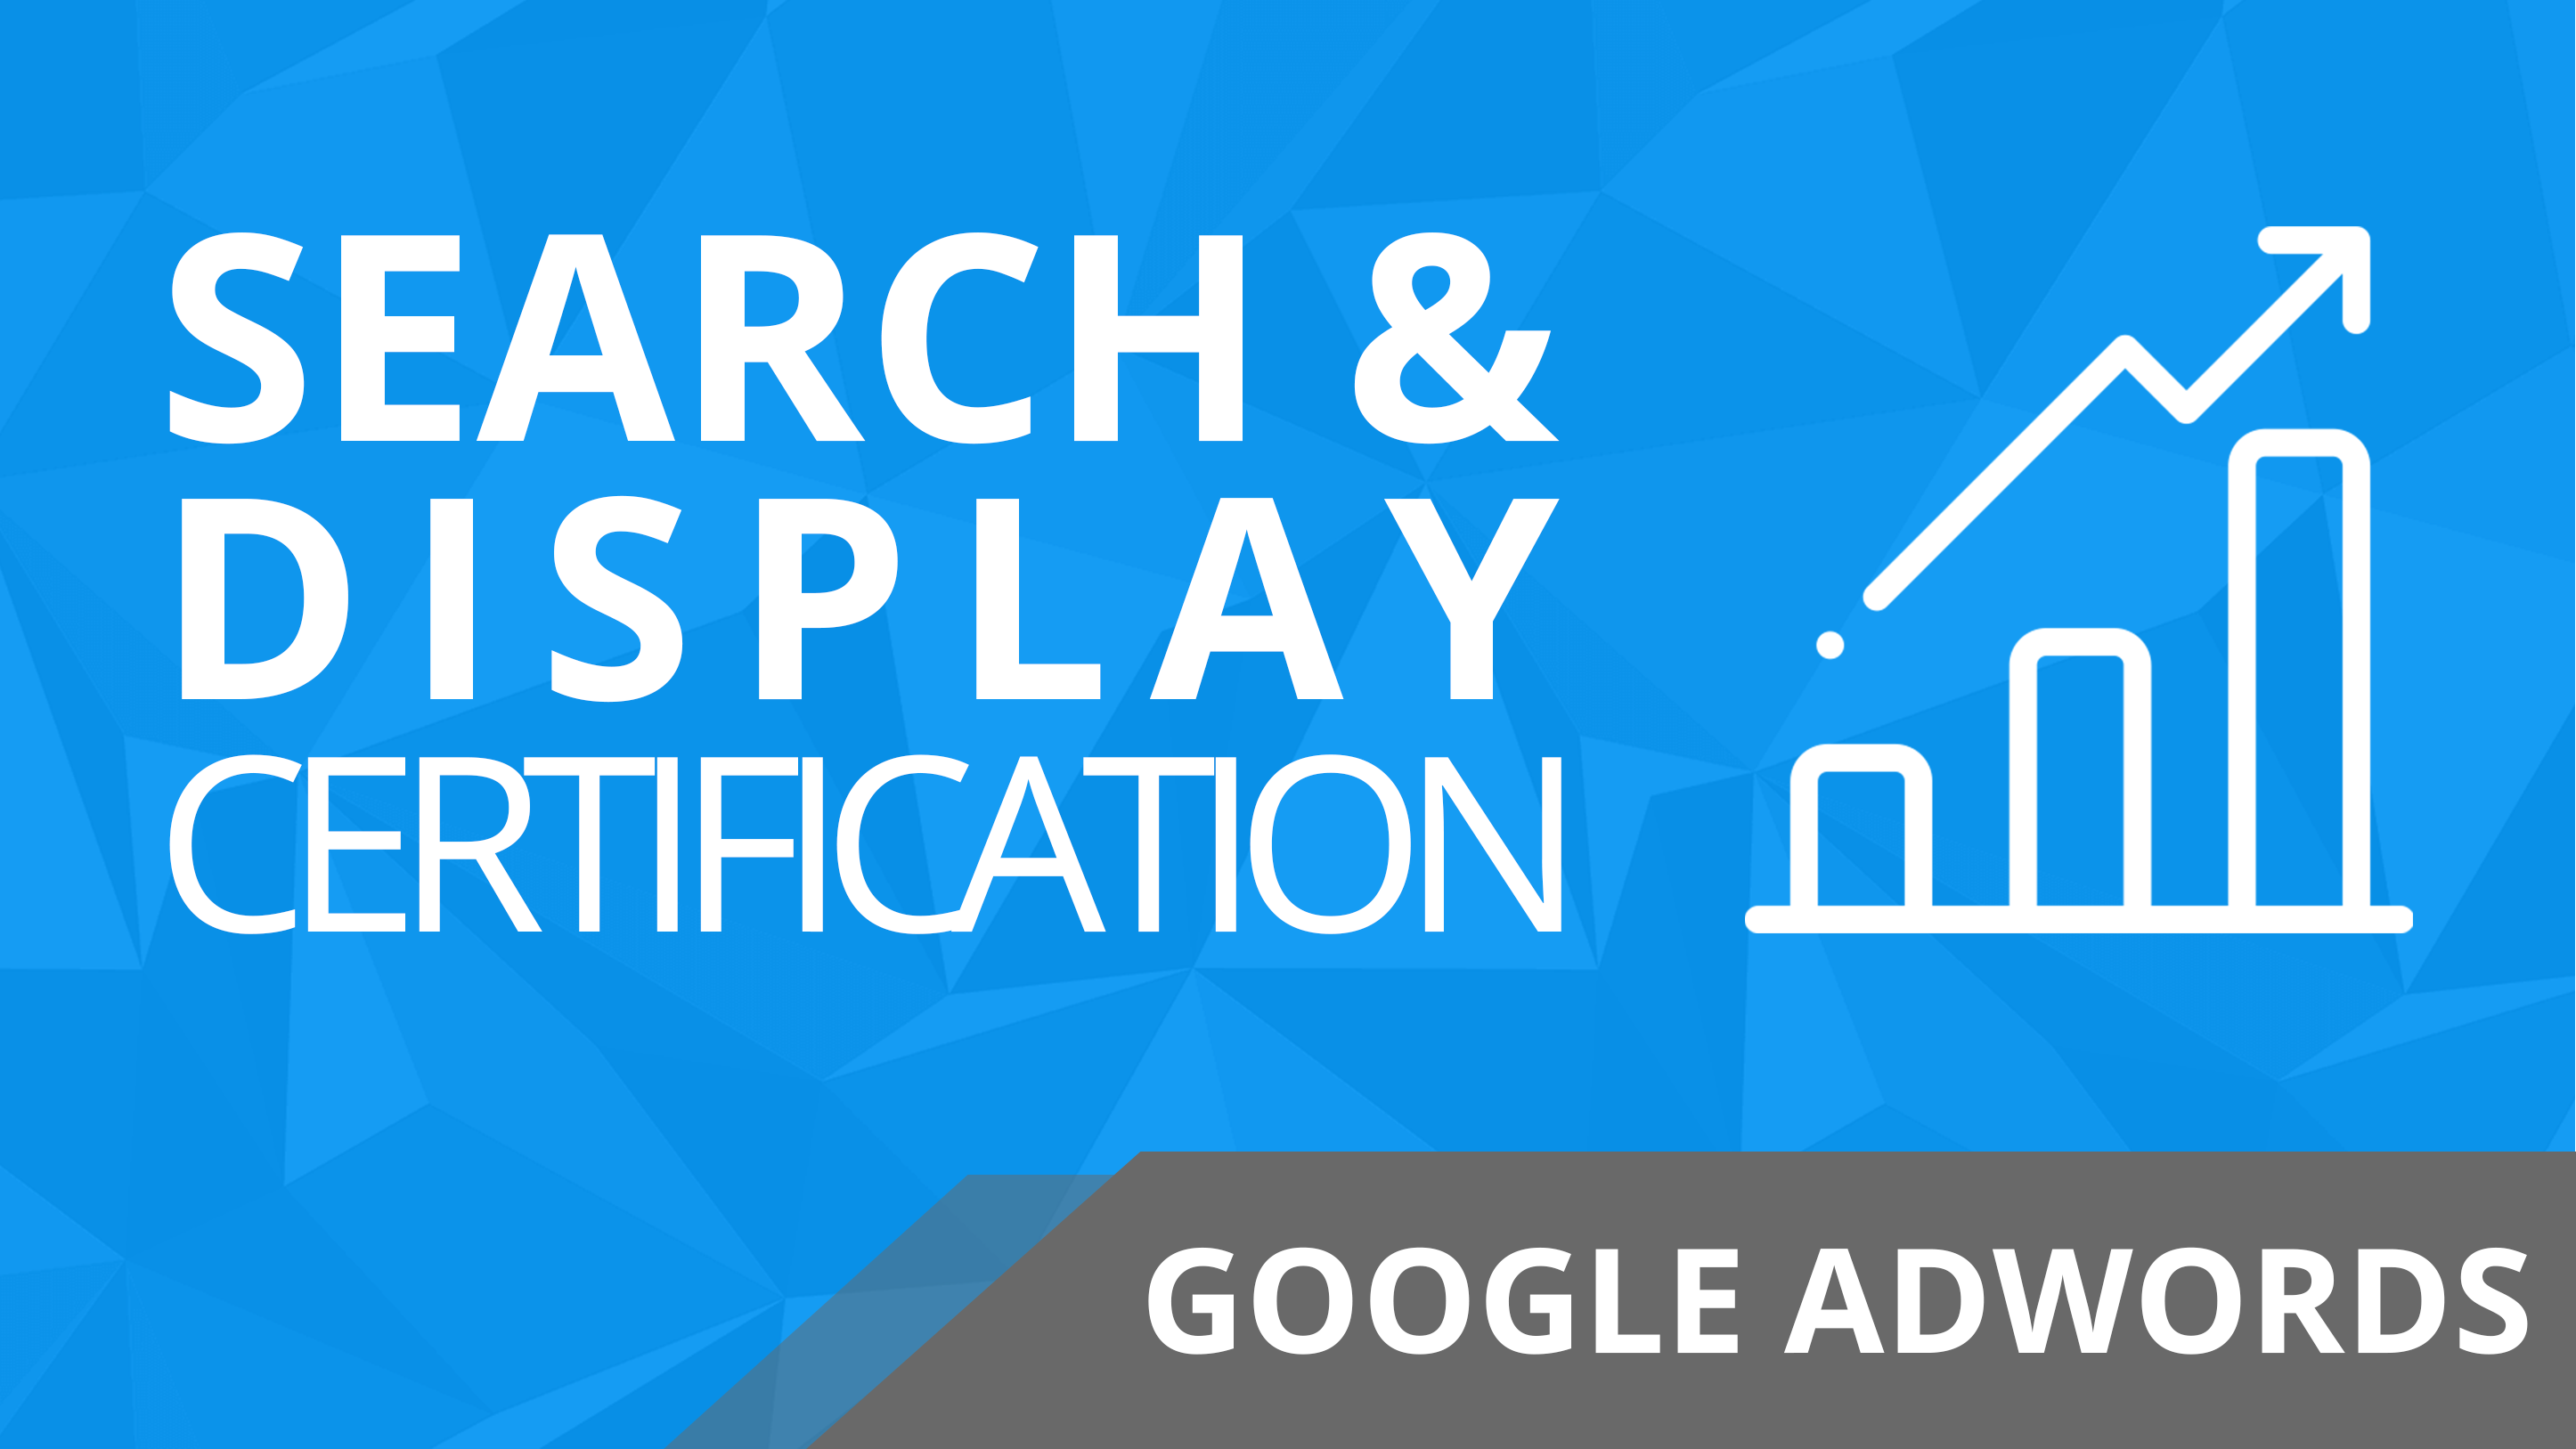 Google Adwords Search Certification Training